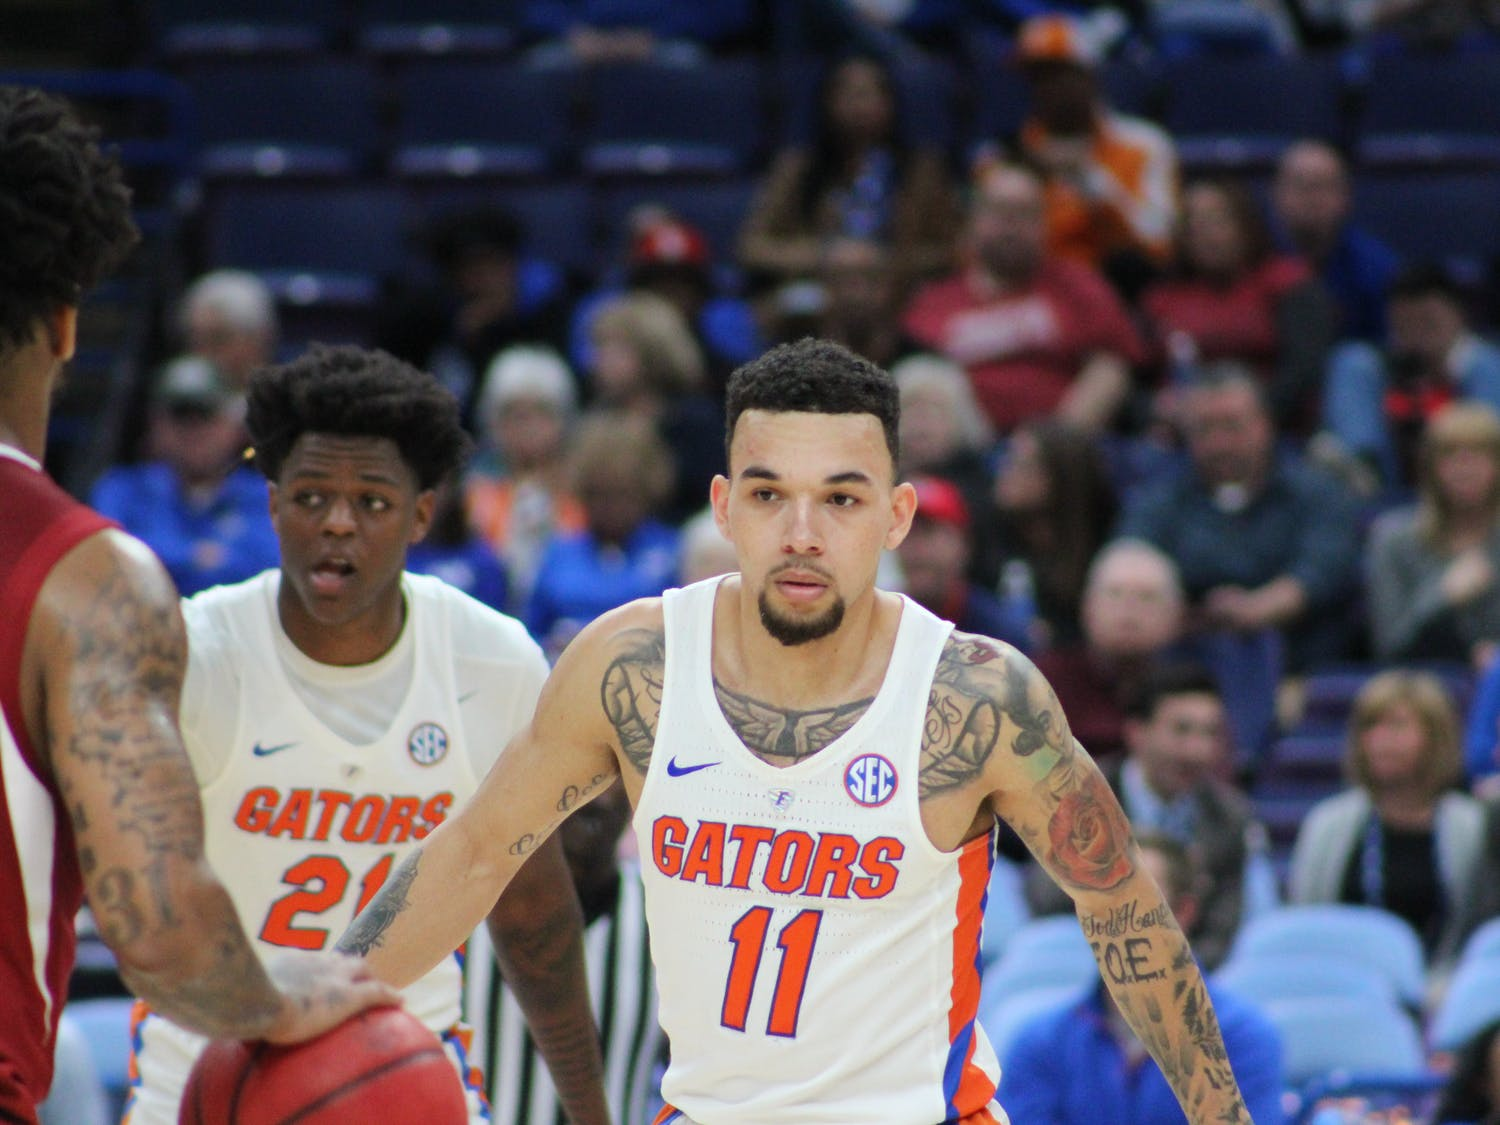 Guard Chris Chiozza dished out 11 assists while contributing eight points in Florida's first-round win over St. Bonaventure.